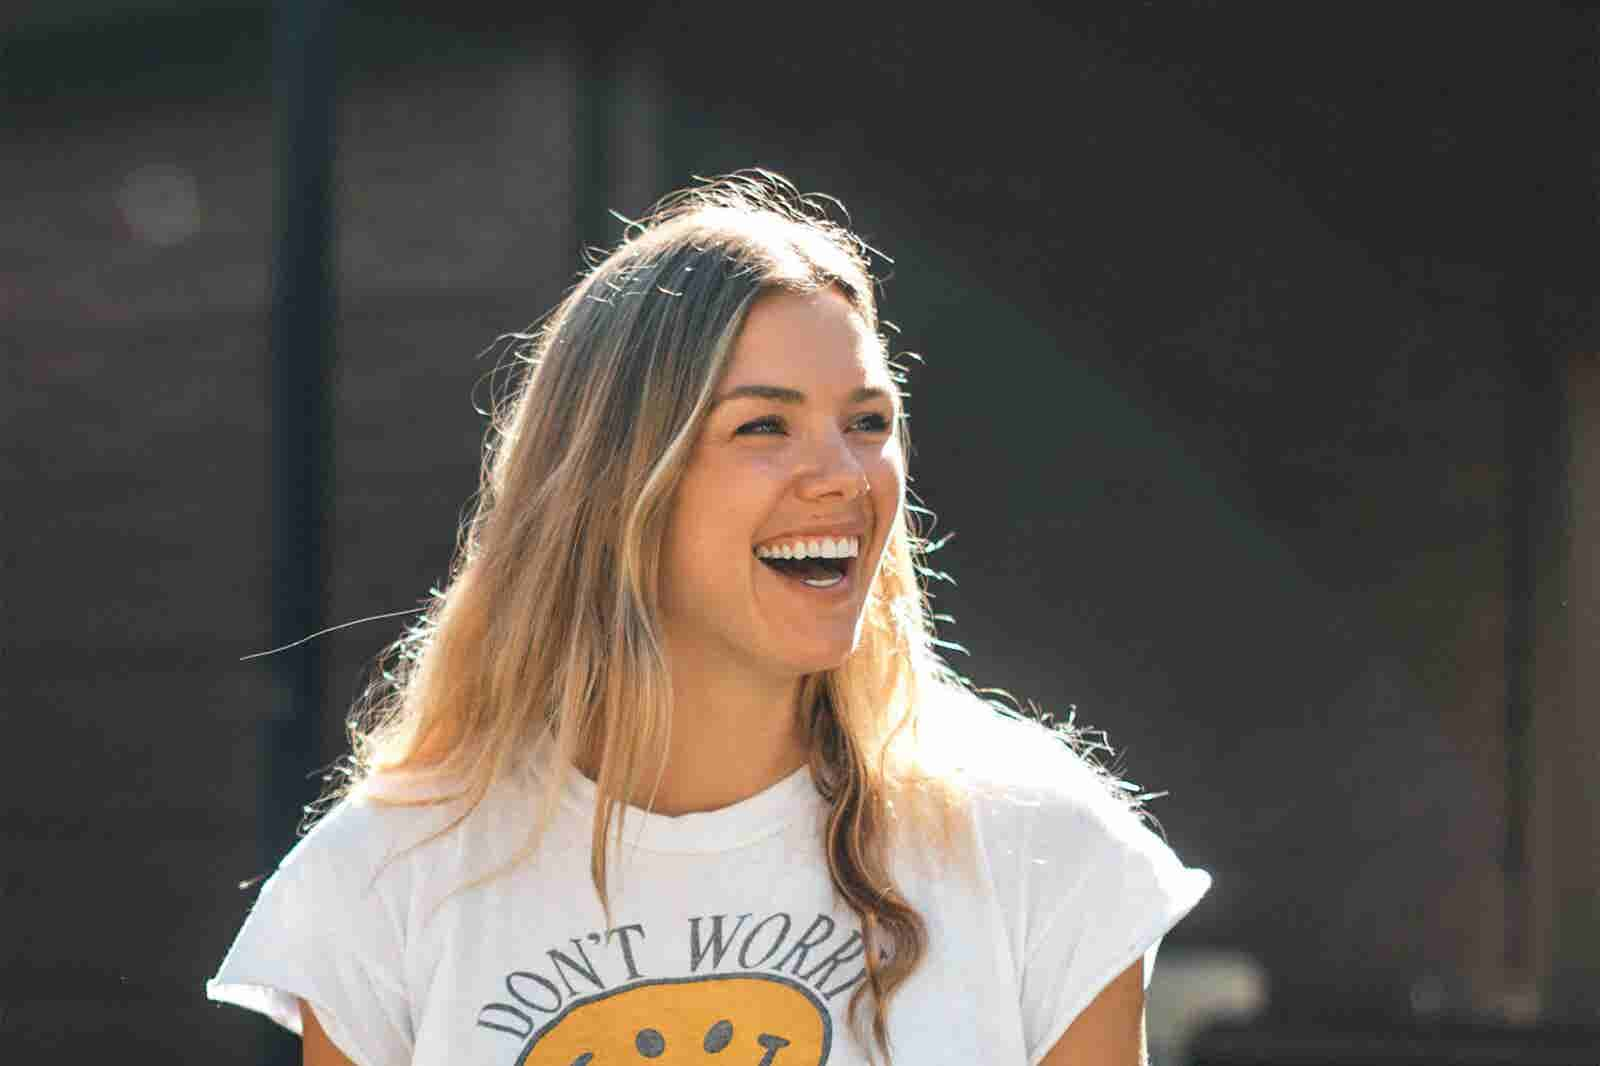 The Young Founder of This Celebrity-Loved Activewear Company Shares Why You Should Always Trust Your Instincts